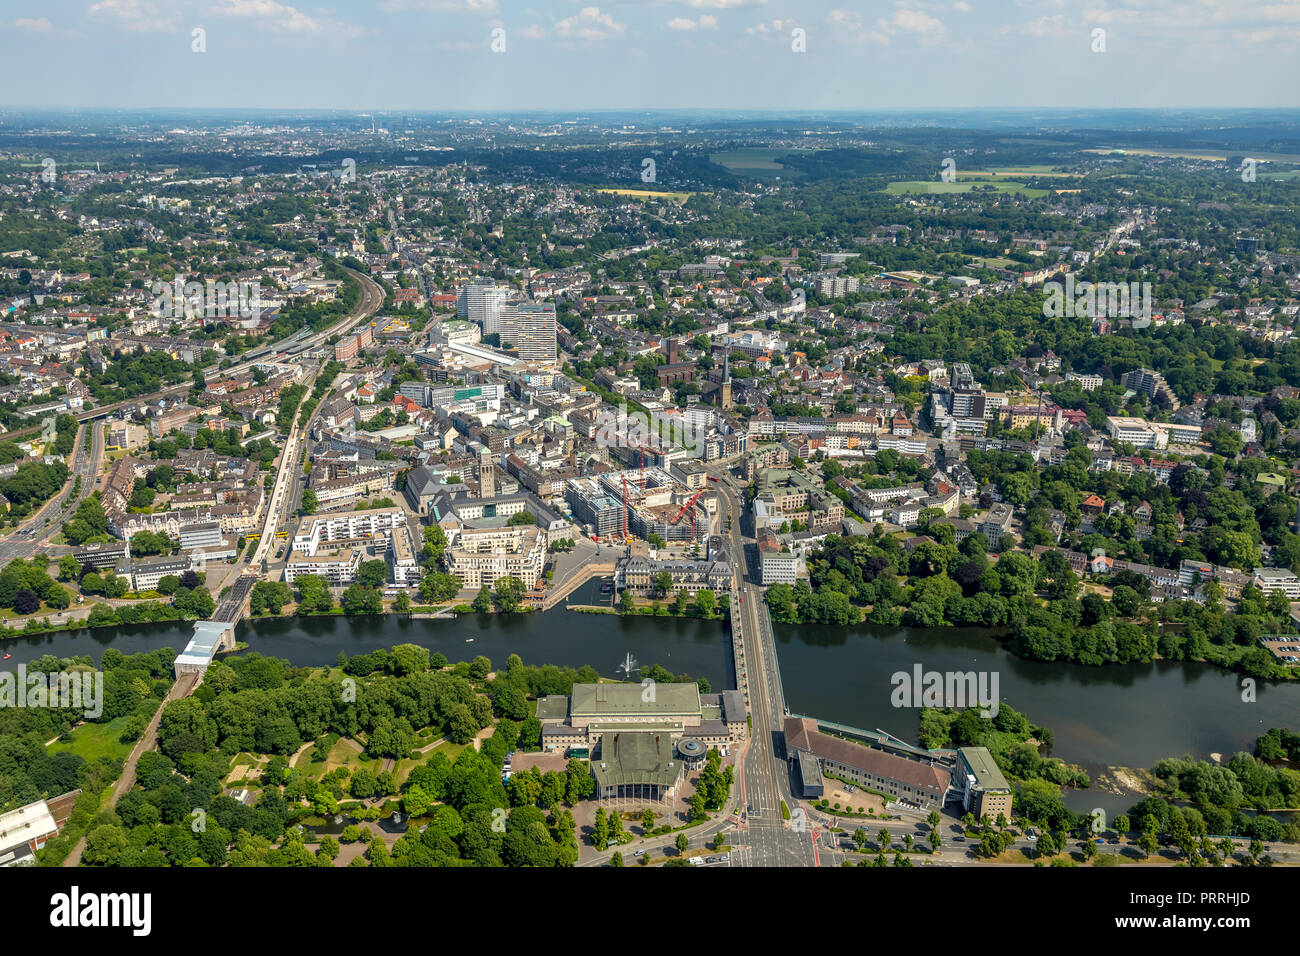 Mülheim city centre with views of Ruhrbania, Ruhrpromenade, Ruhr and City Hall, StadtQuartiers Schlossstraße, SQS - Stock Image